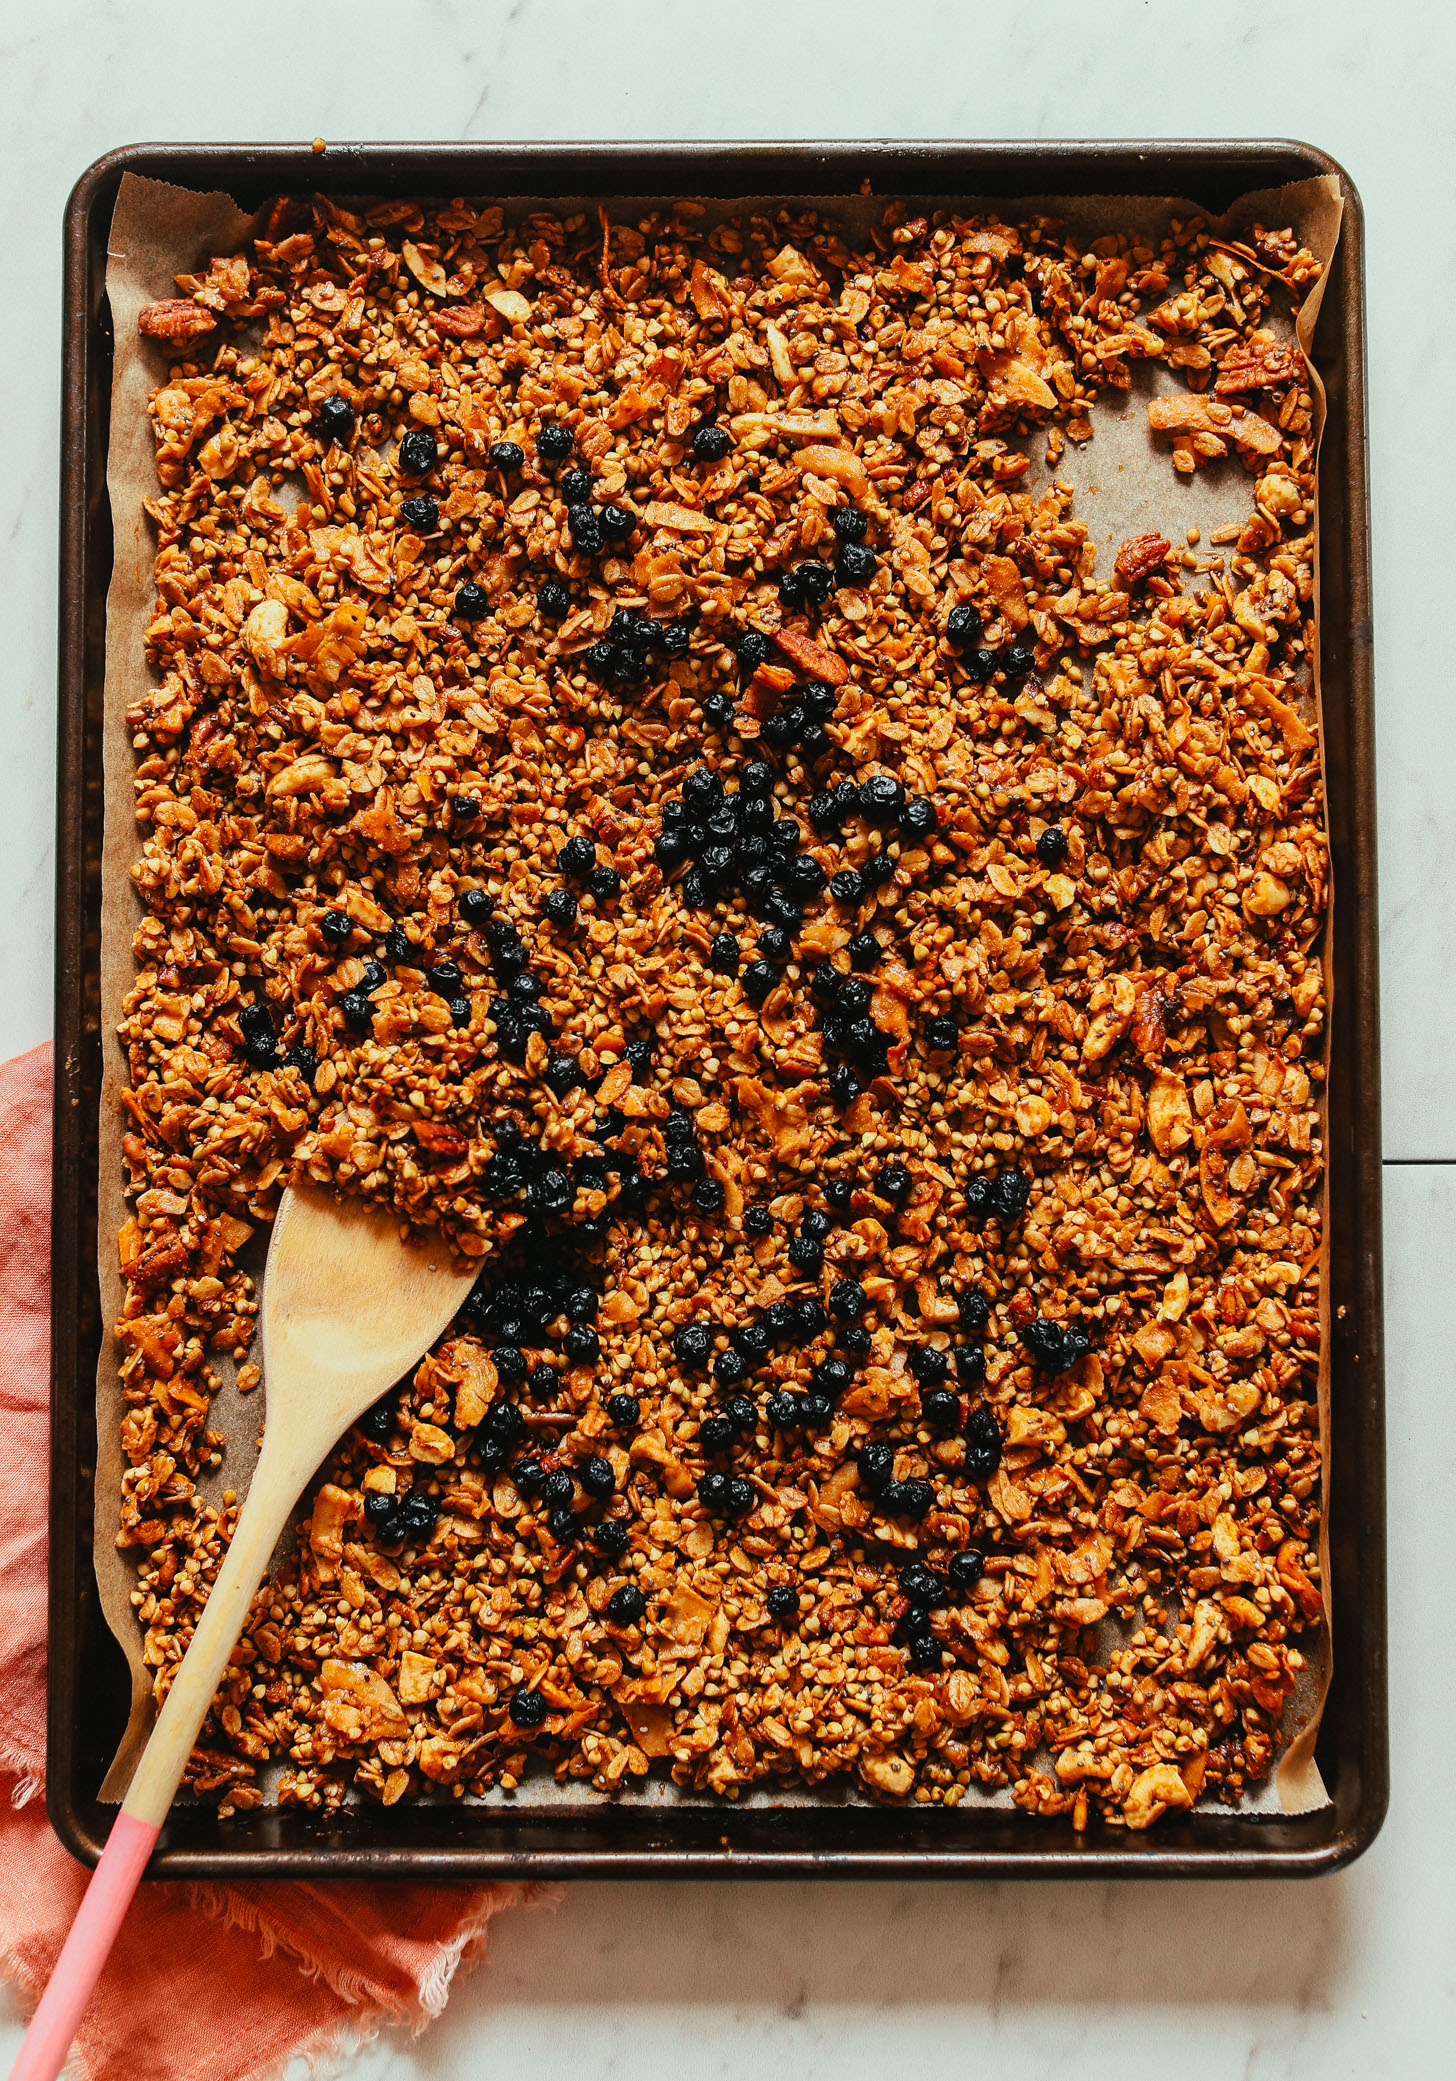 Freshly baked Easy Buckwheat Granola on a parchment-lined baking sheet